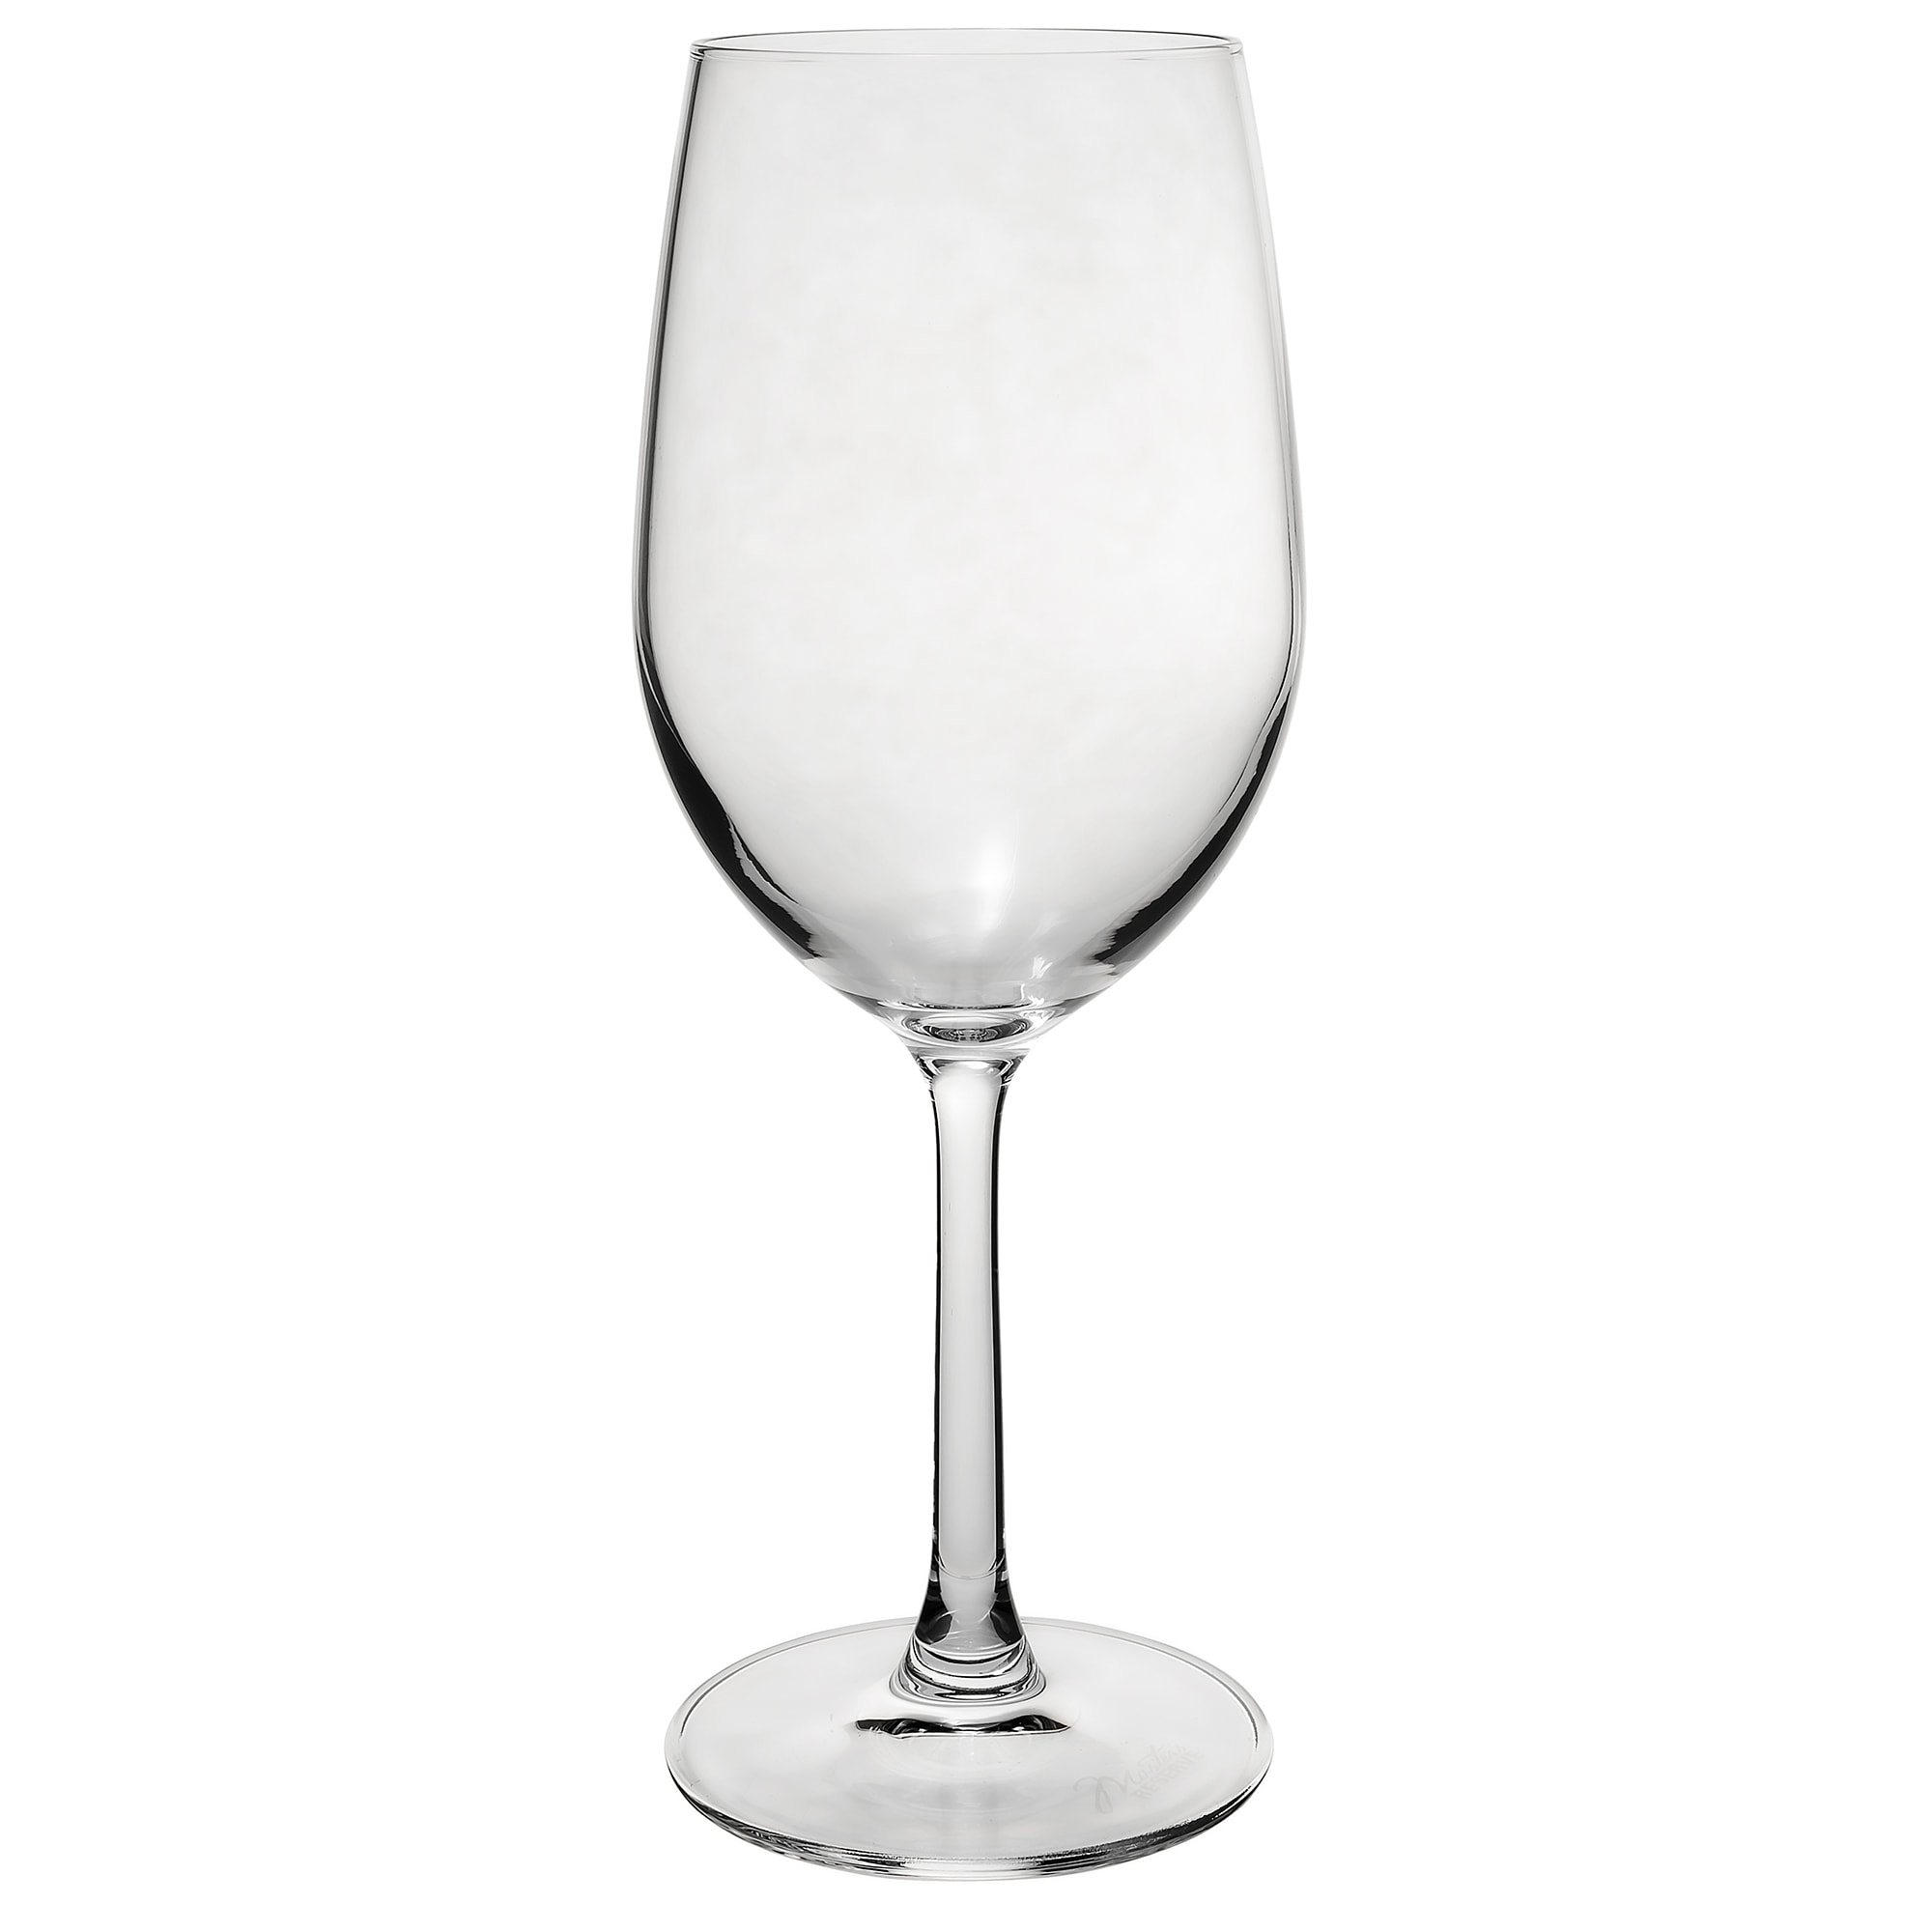 Libbey 9231 12 oz Wine Glass, Master's Reserve™, Clear